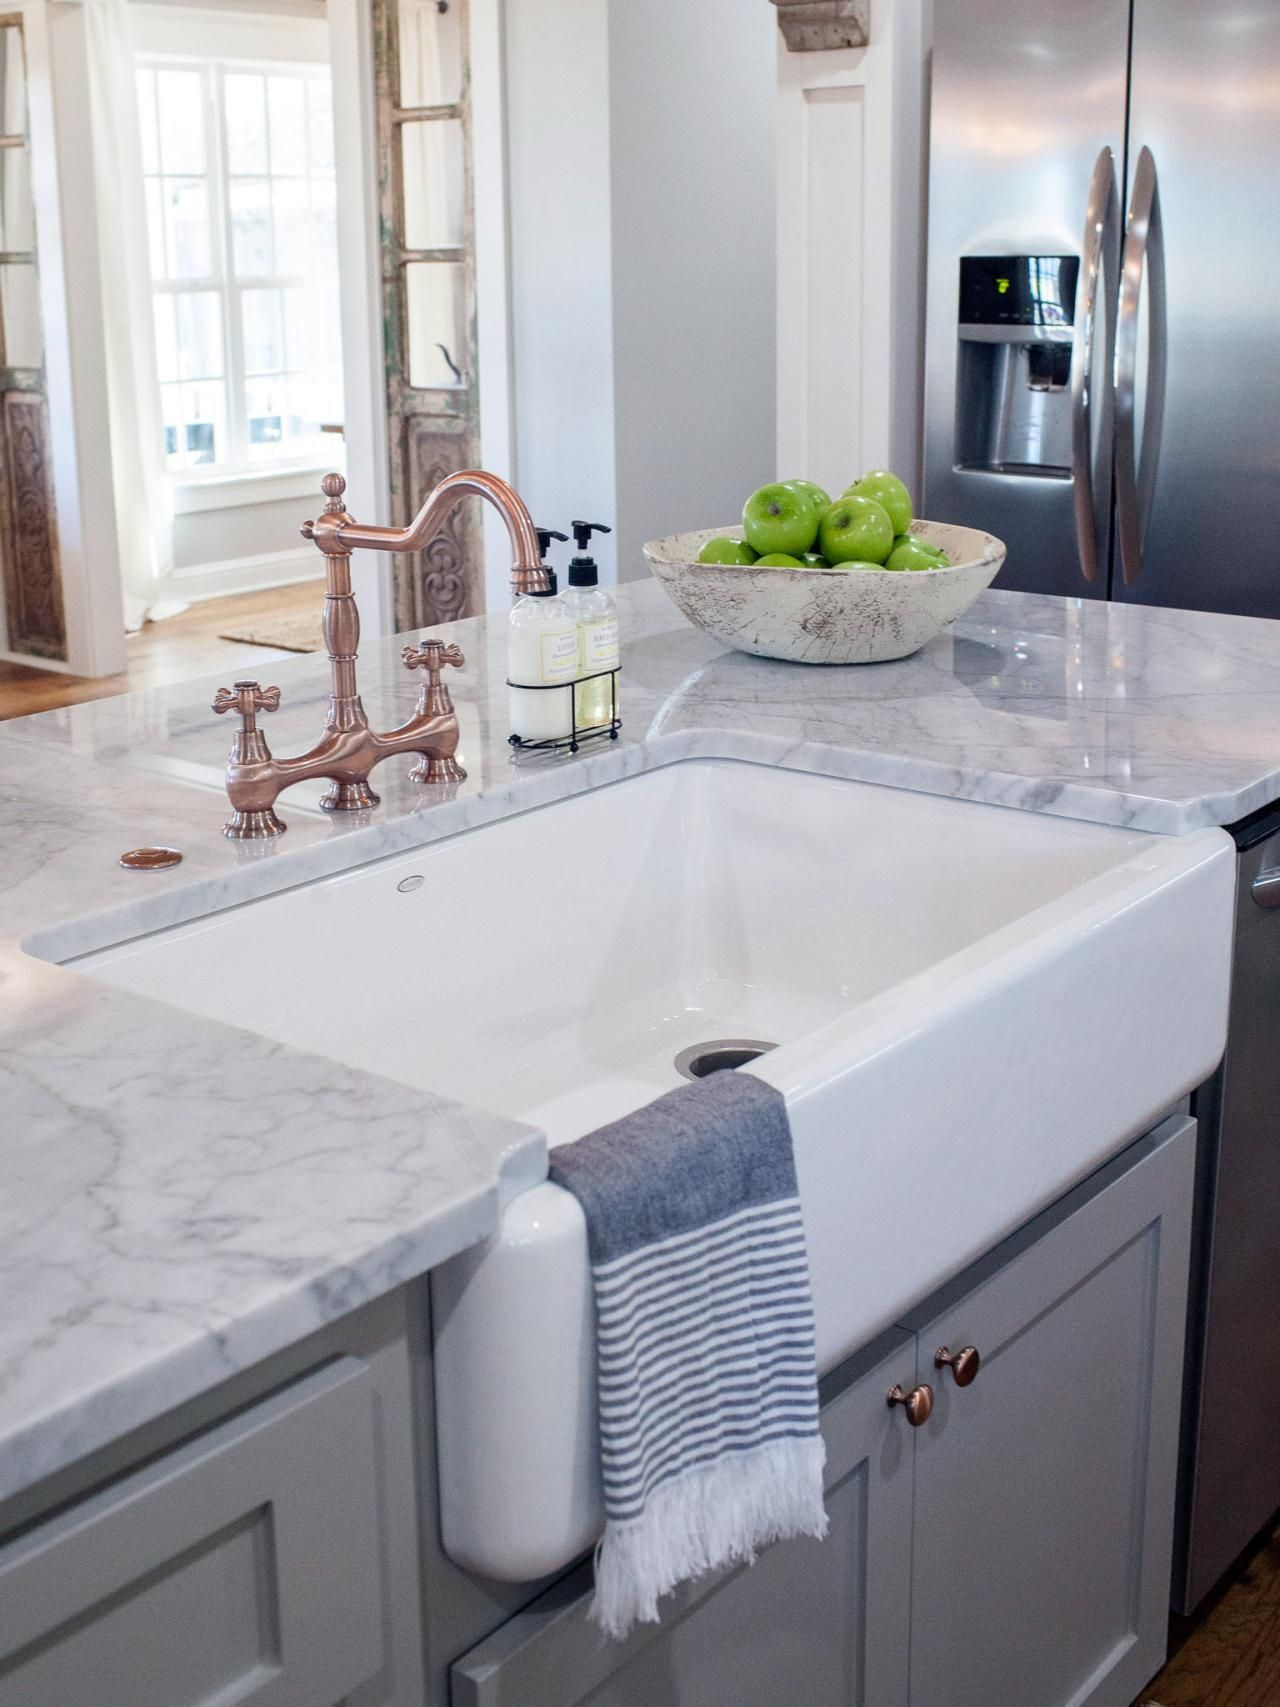 Fixer upper cabinet pulls - As Season 3 Of Hgtv S Fixer Upper Draws To Its Finale Chip And Joanna Gaines